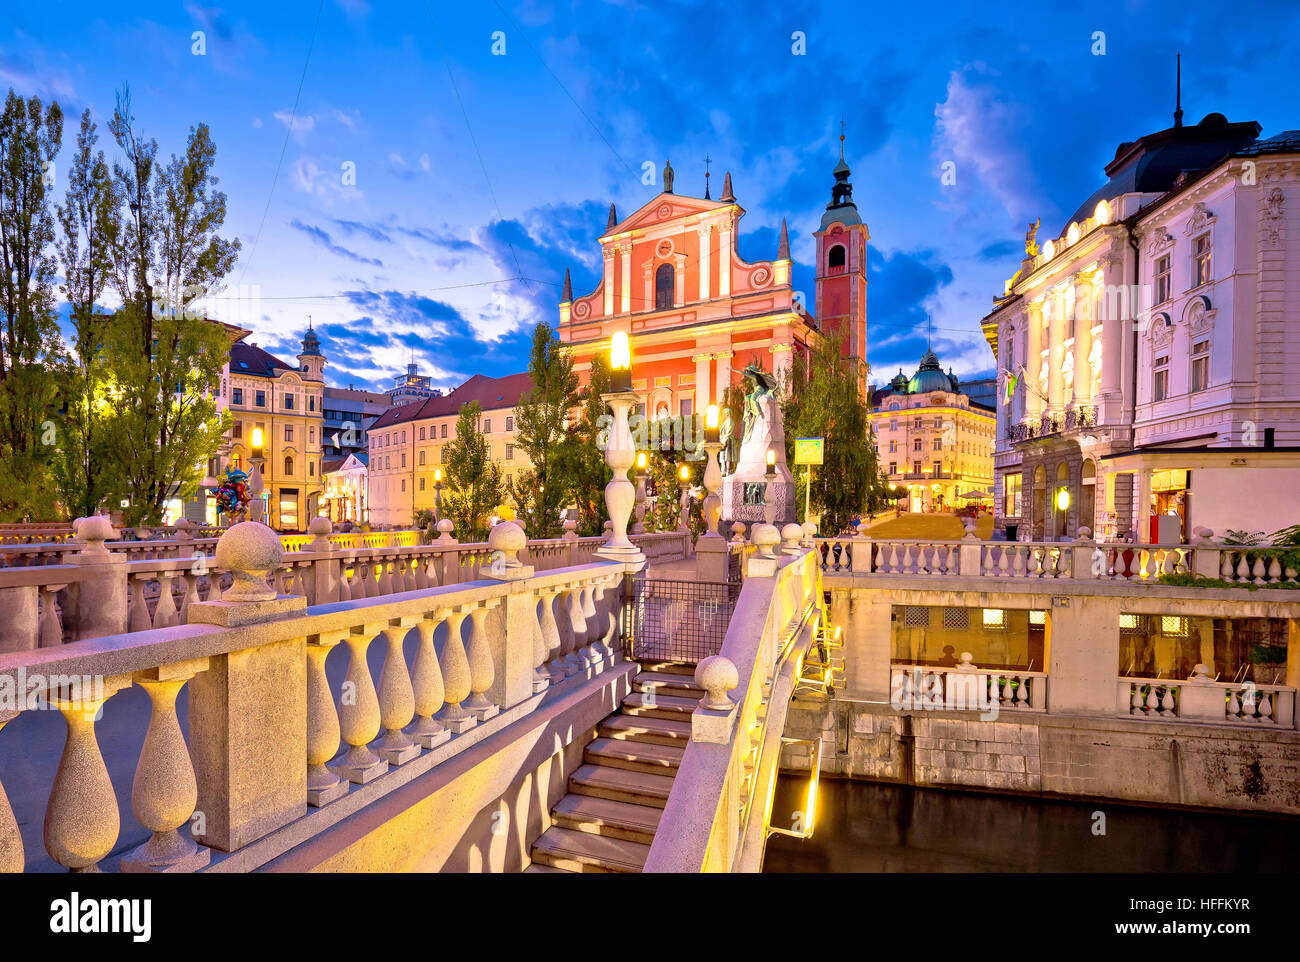 Tromostovje bridge and square evening view, Ljubljana, capital of Slovenia - Stock Image